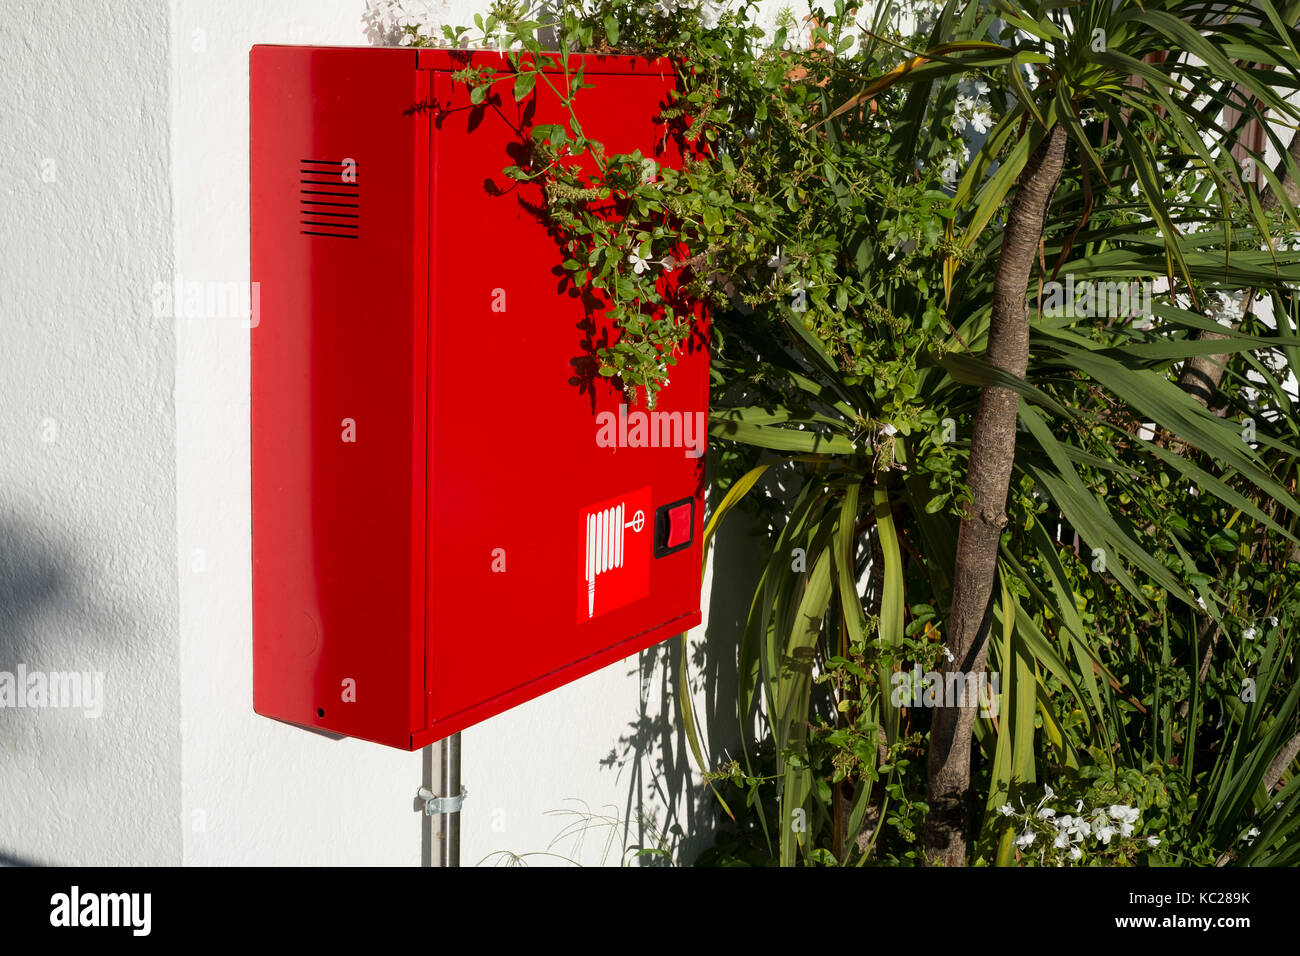 Red fire hose against green shrubbery in Lloret de Mar, Spain Stock Photo